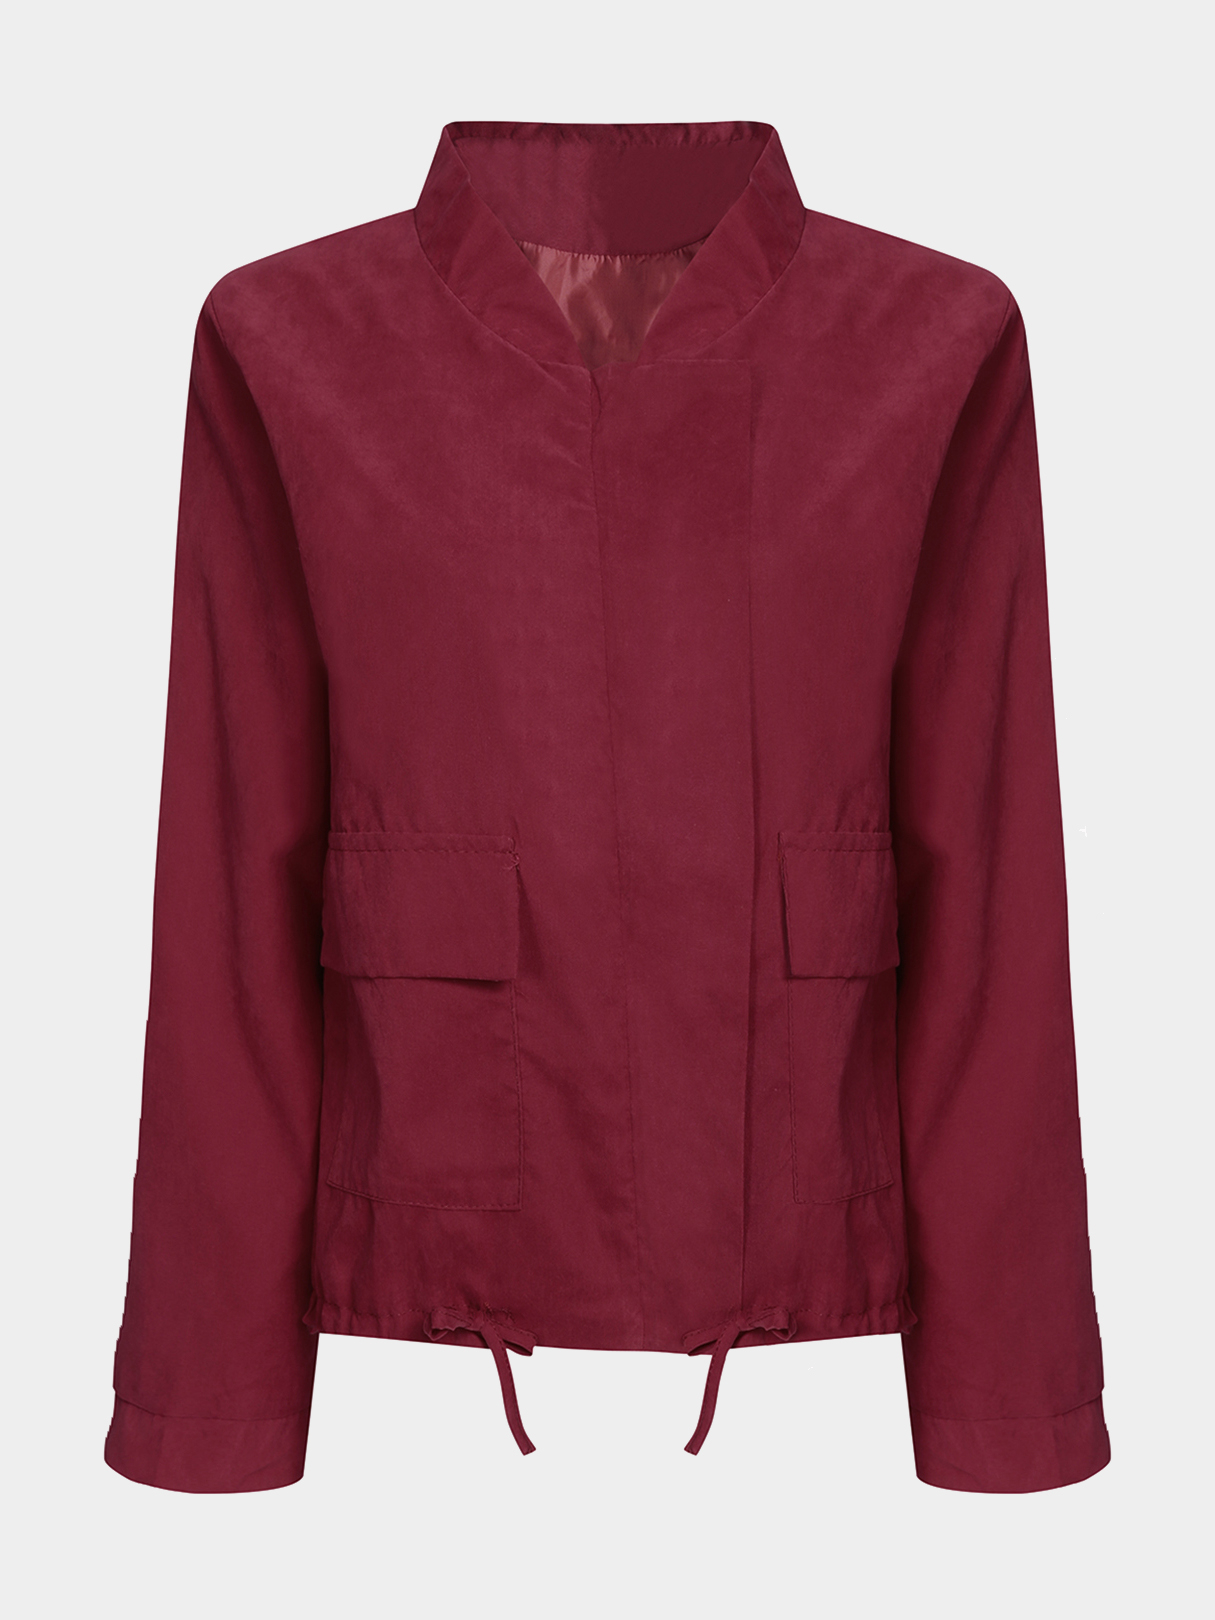 Wine Red Casual Coat With Drawstring Hem